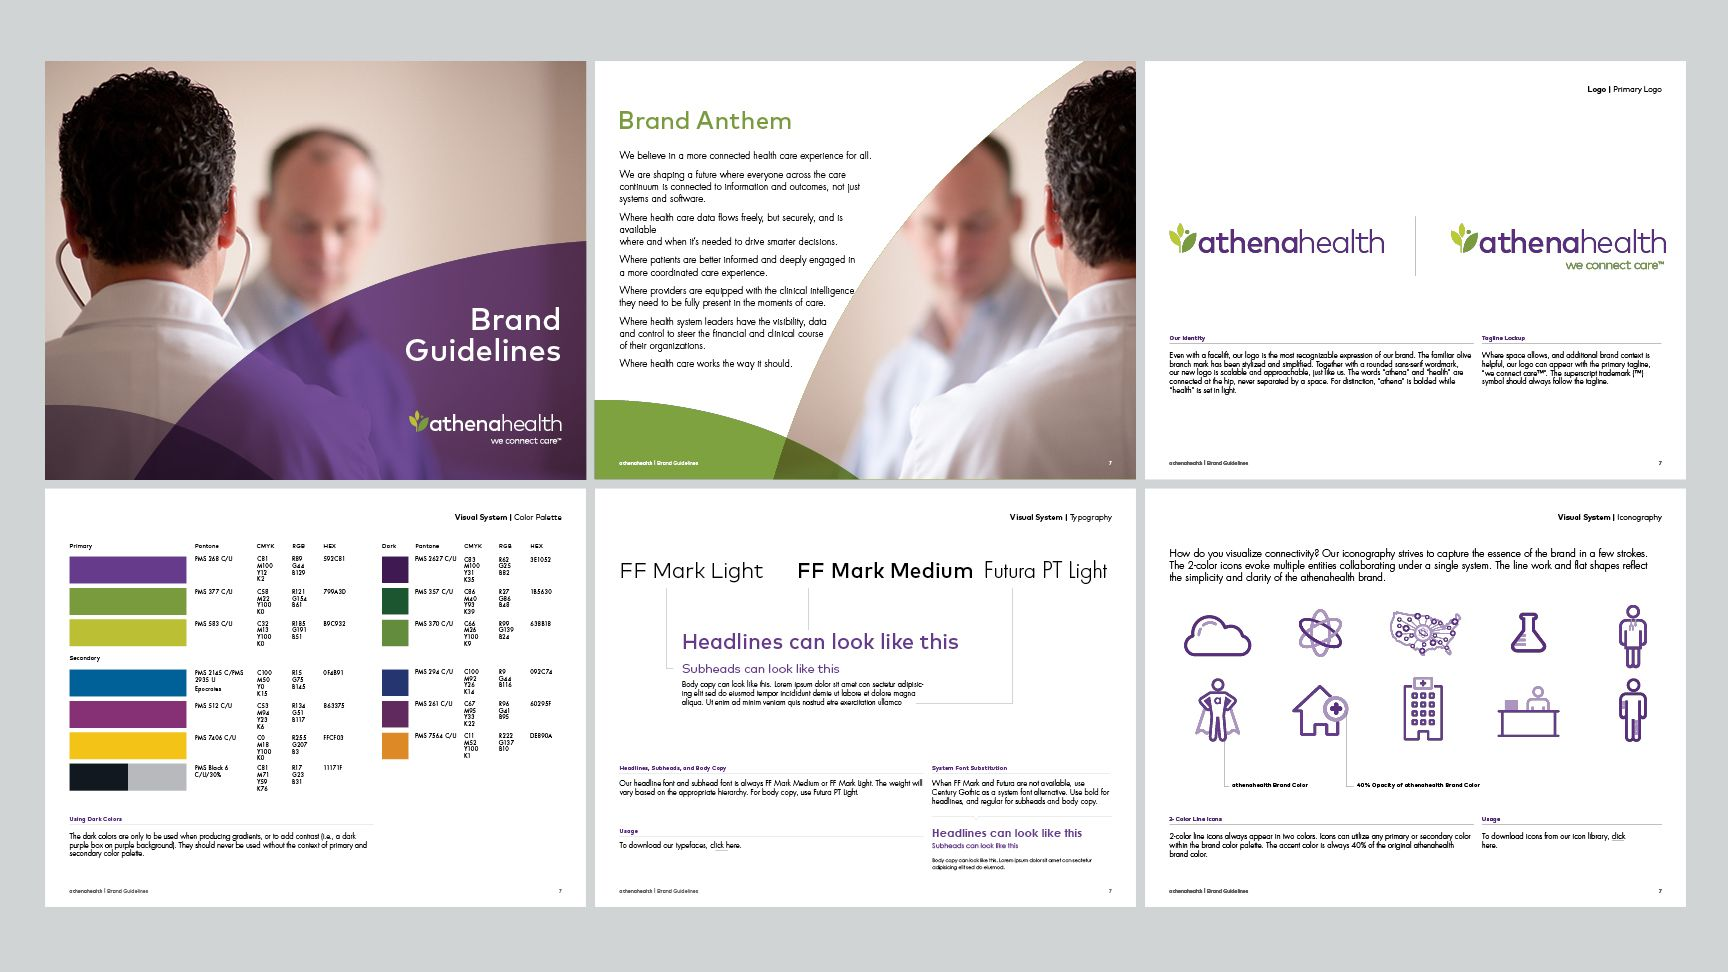 Athenahealth Tank Design Cloud Based Services Brand Guidelines Marketing Collateral